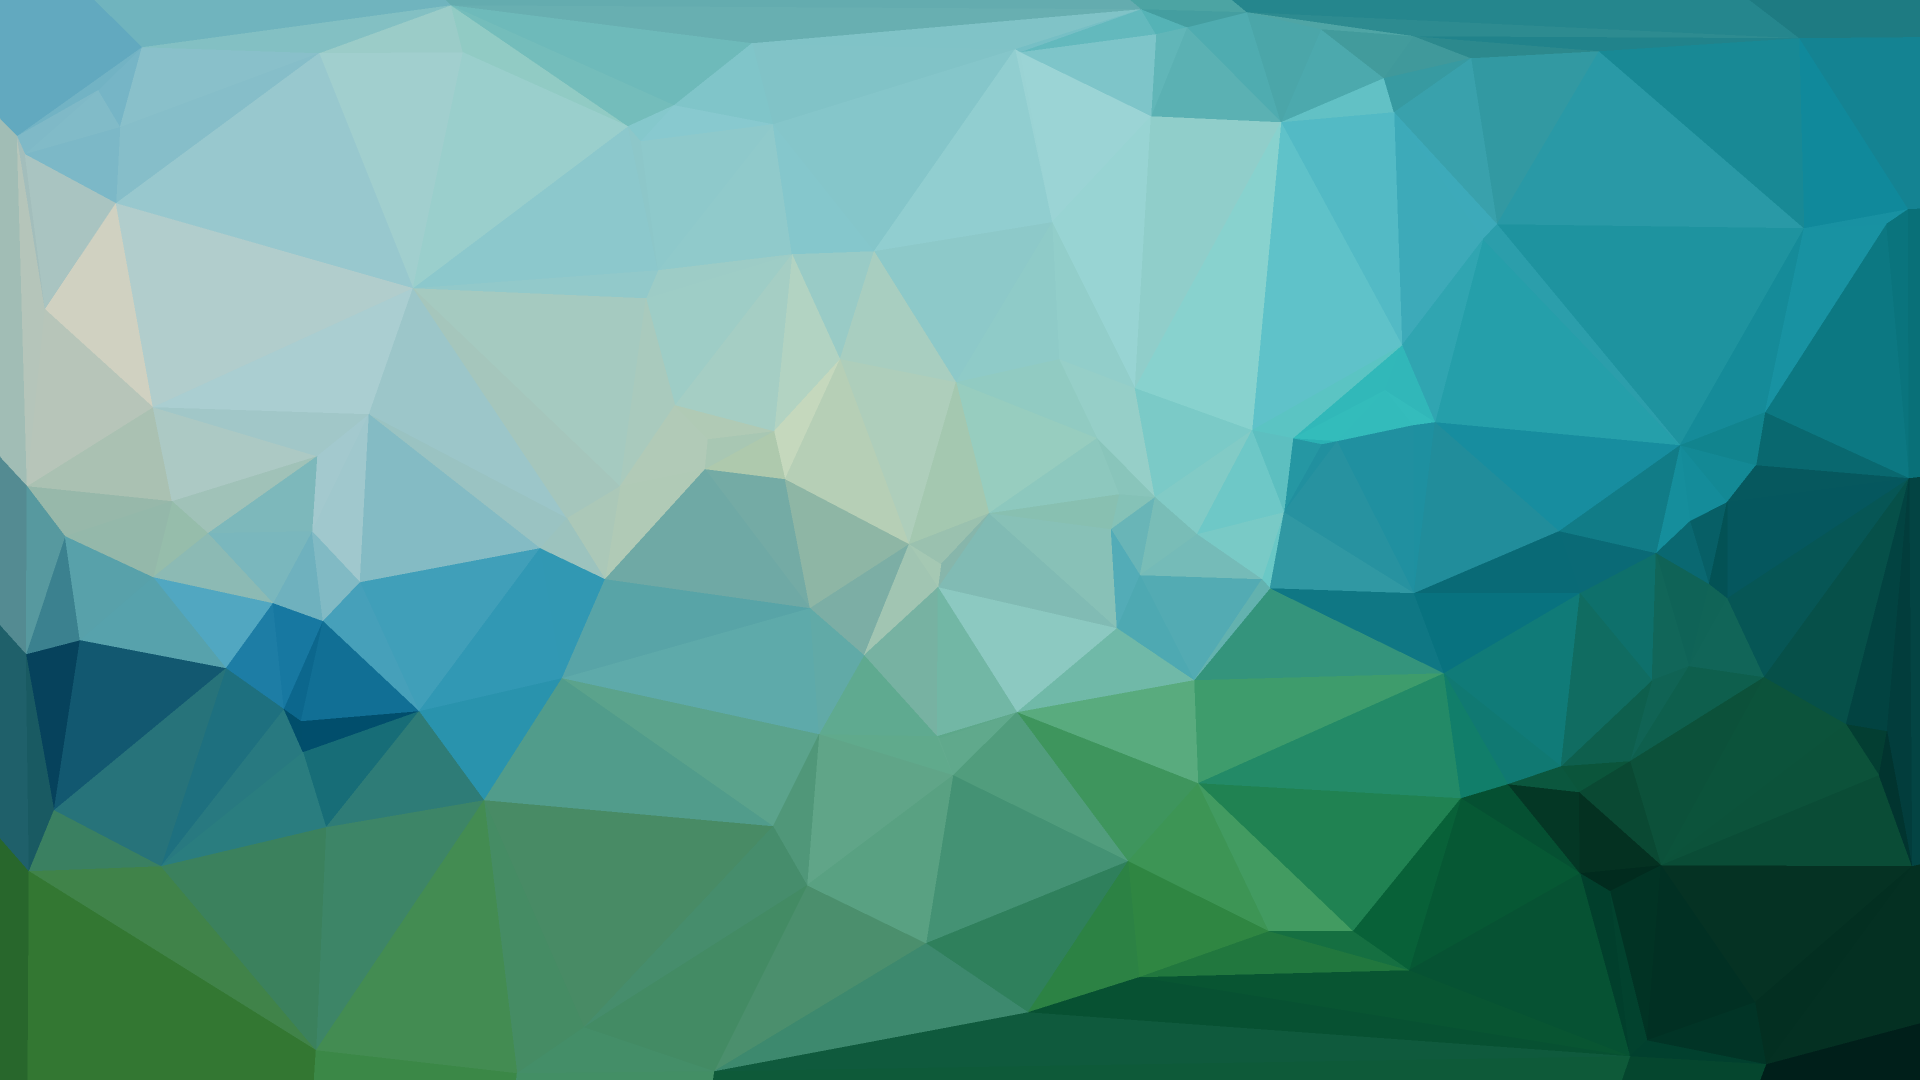 Free Colorful Geometric Wallpaper: Wallpaper Geometric Color 33 1080p HD By AIRWORLDKING On